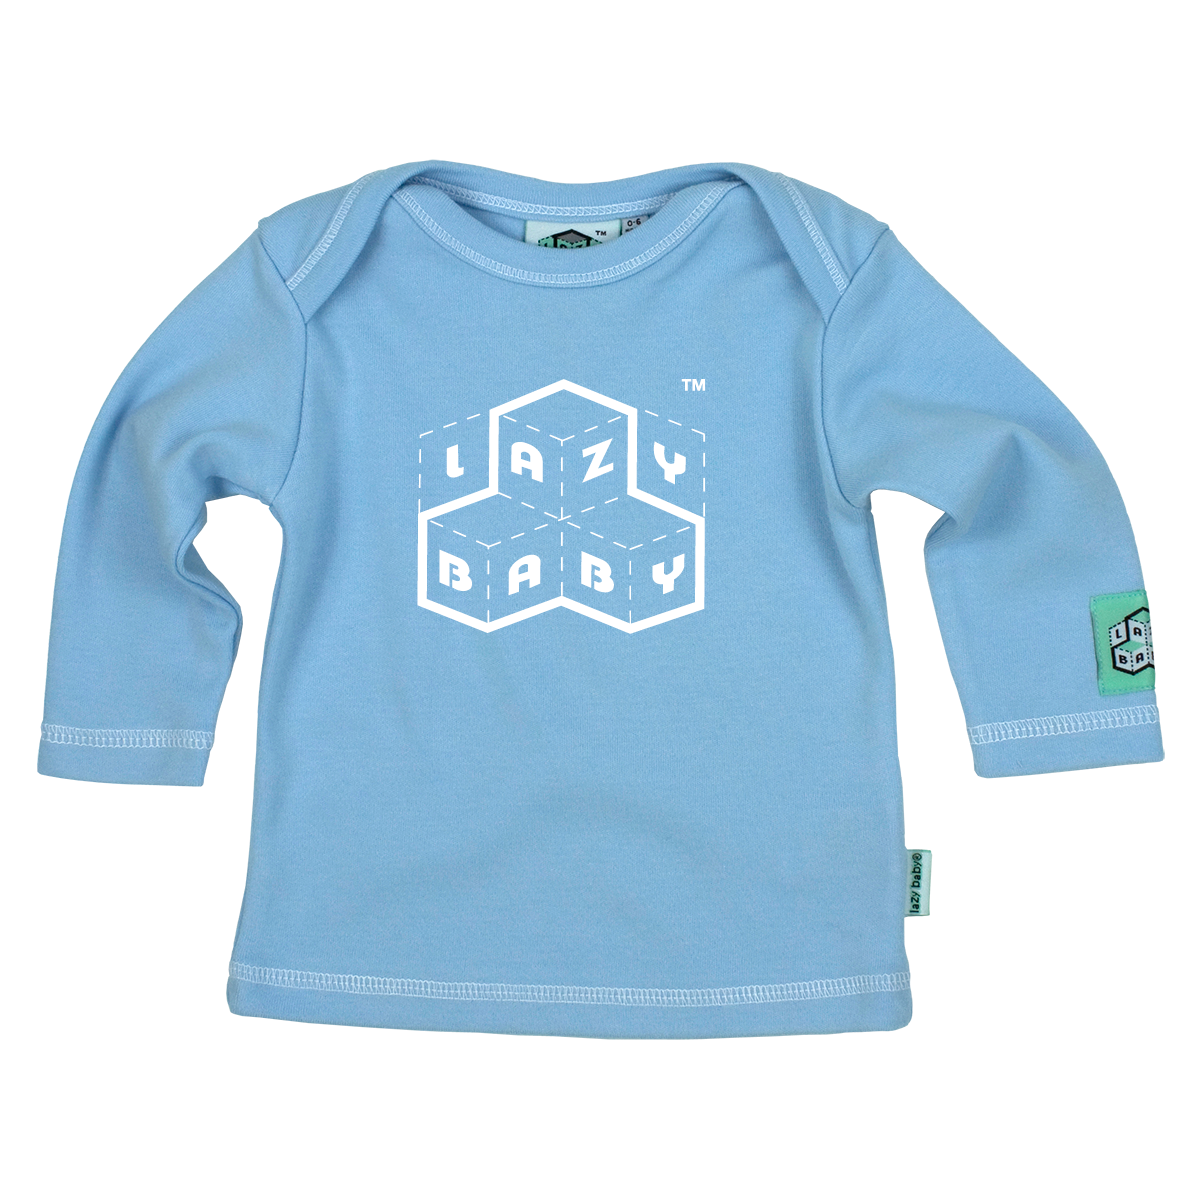 LAZY BABY LOGO SKY BABIES FAIRTRADE LONG SLEEVE No description http://www.MightGet.com/january-2017-11/unbranded-lazy-baby-logo-sky-babies-fairtrade-long-sleeve.asp